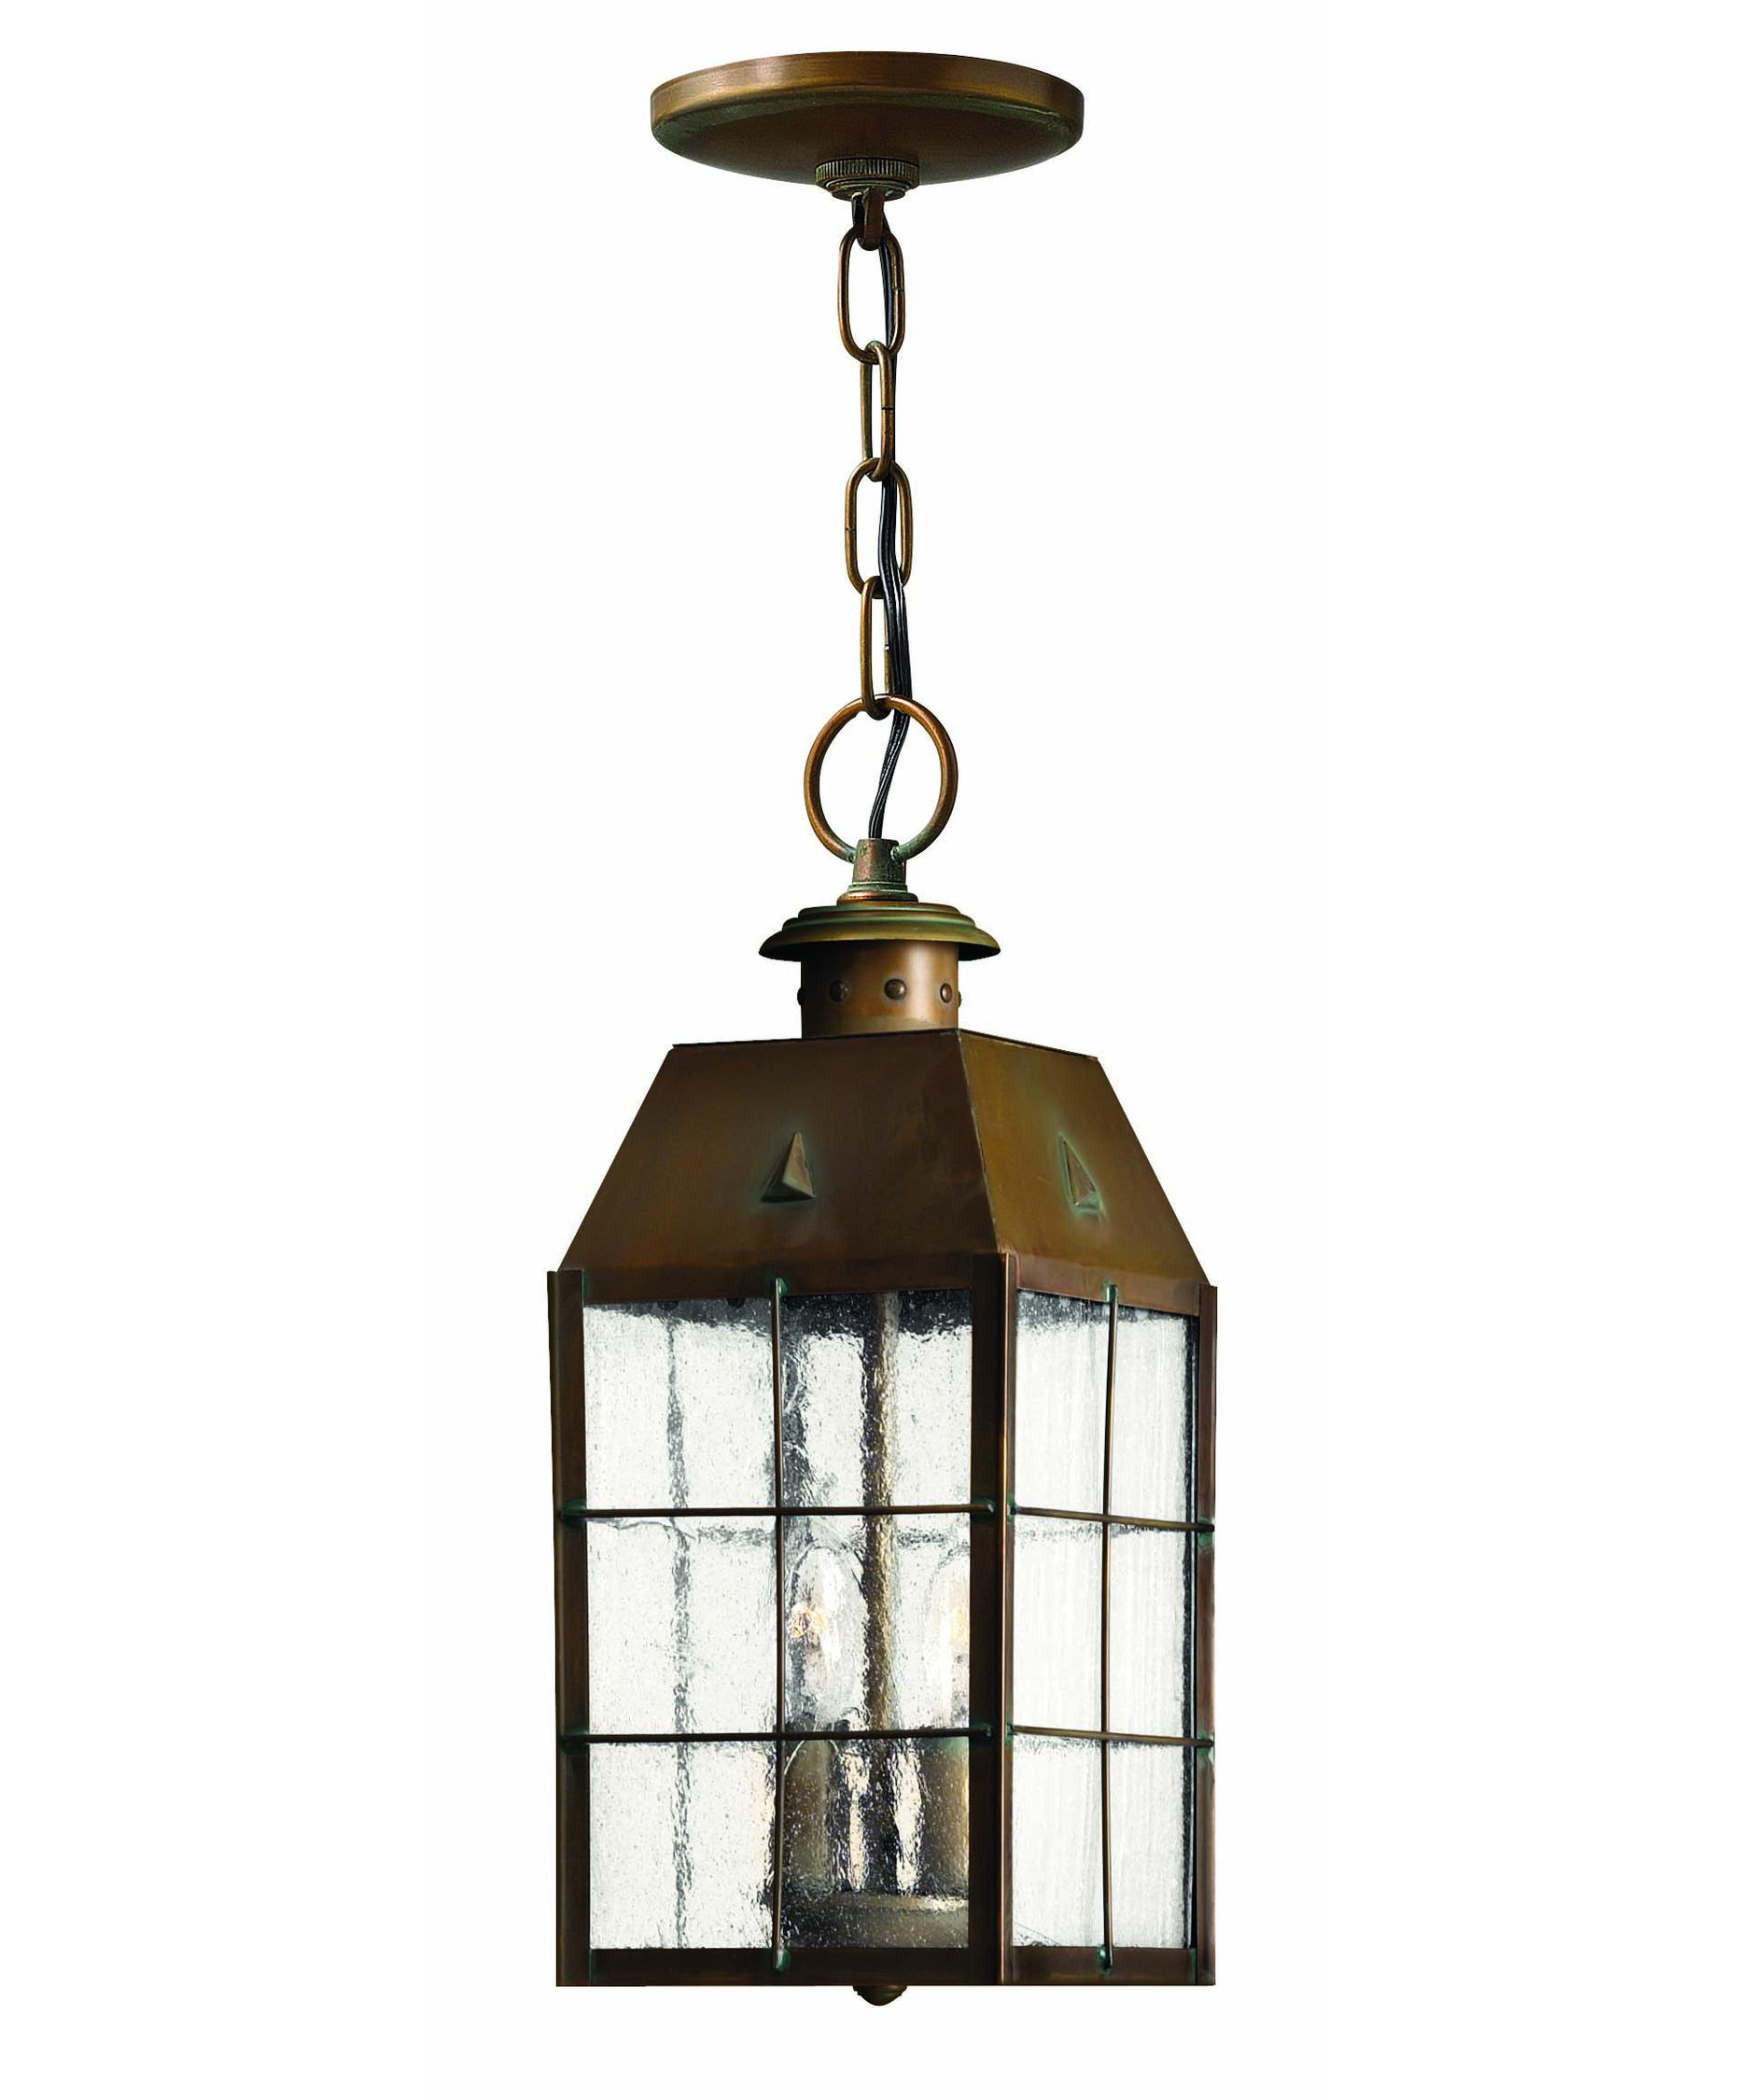 Outdoor hanging lamp - Shown In Aged Brass Finish And Clear Seedy Glass